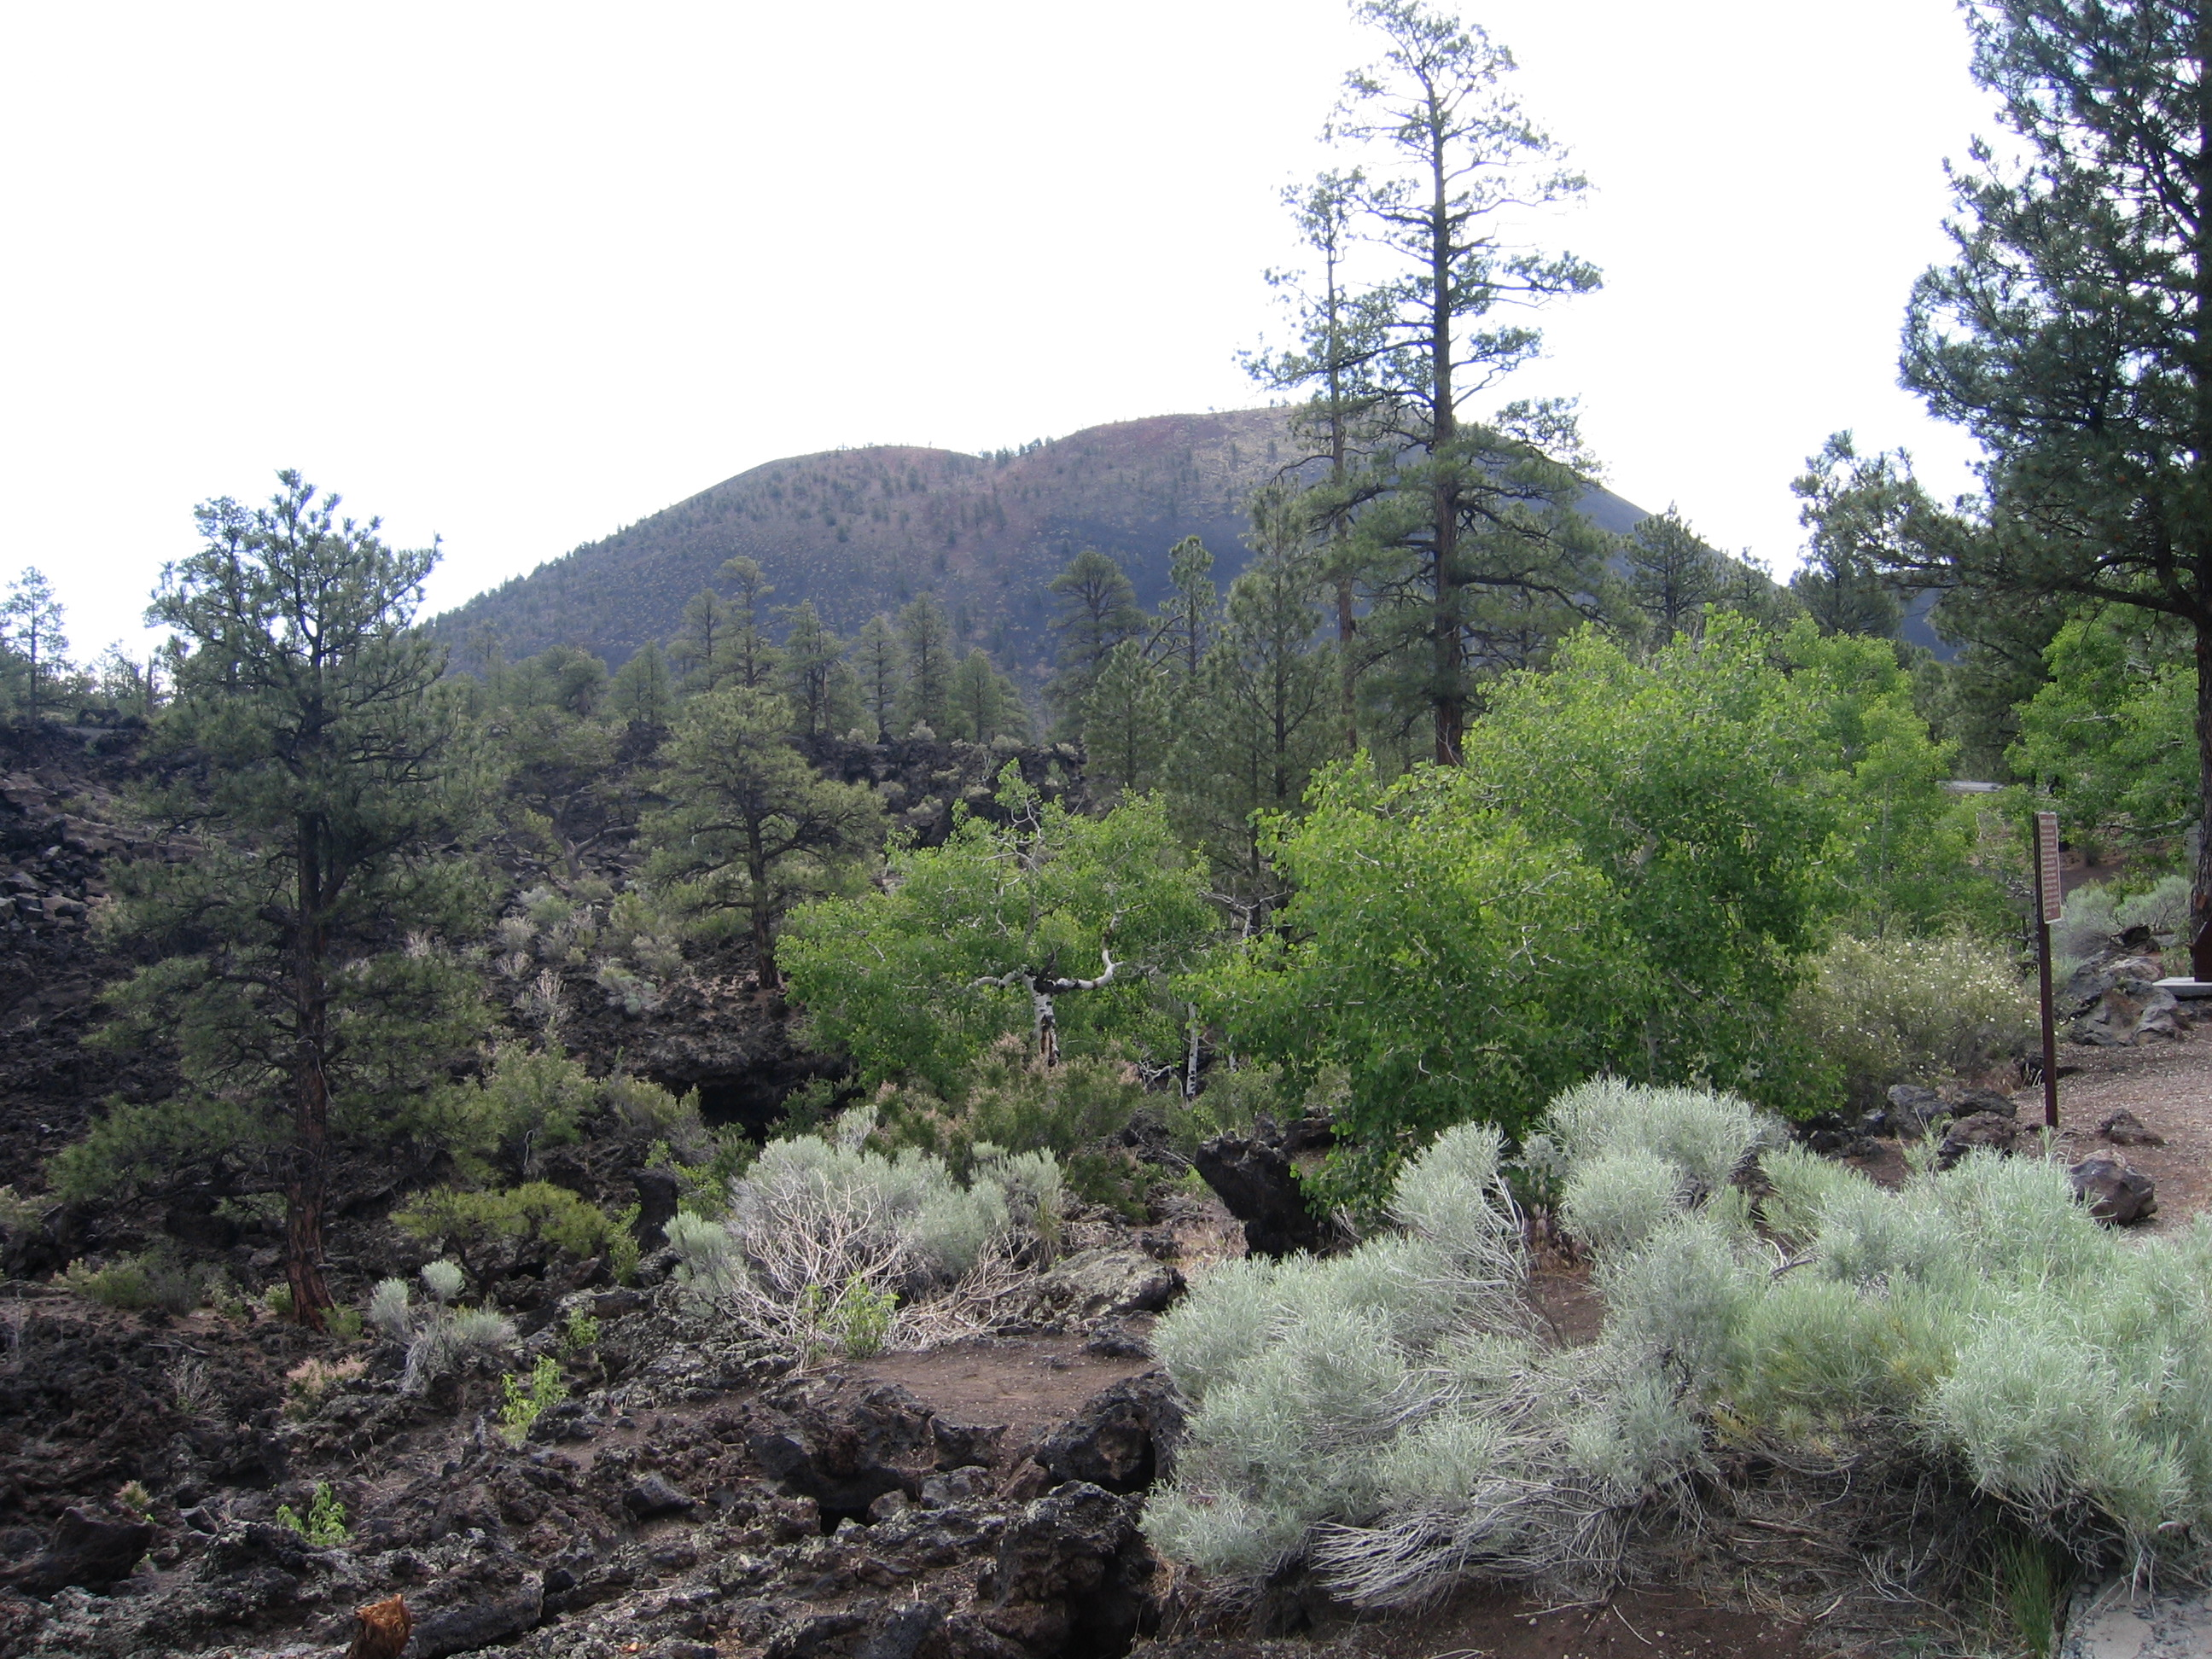 Sunset Crater, Arizona, USA, Juni 2005